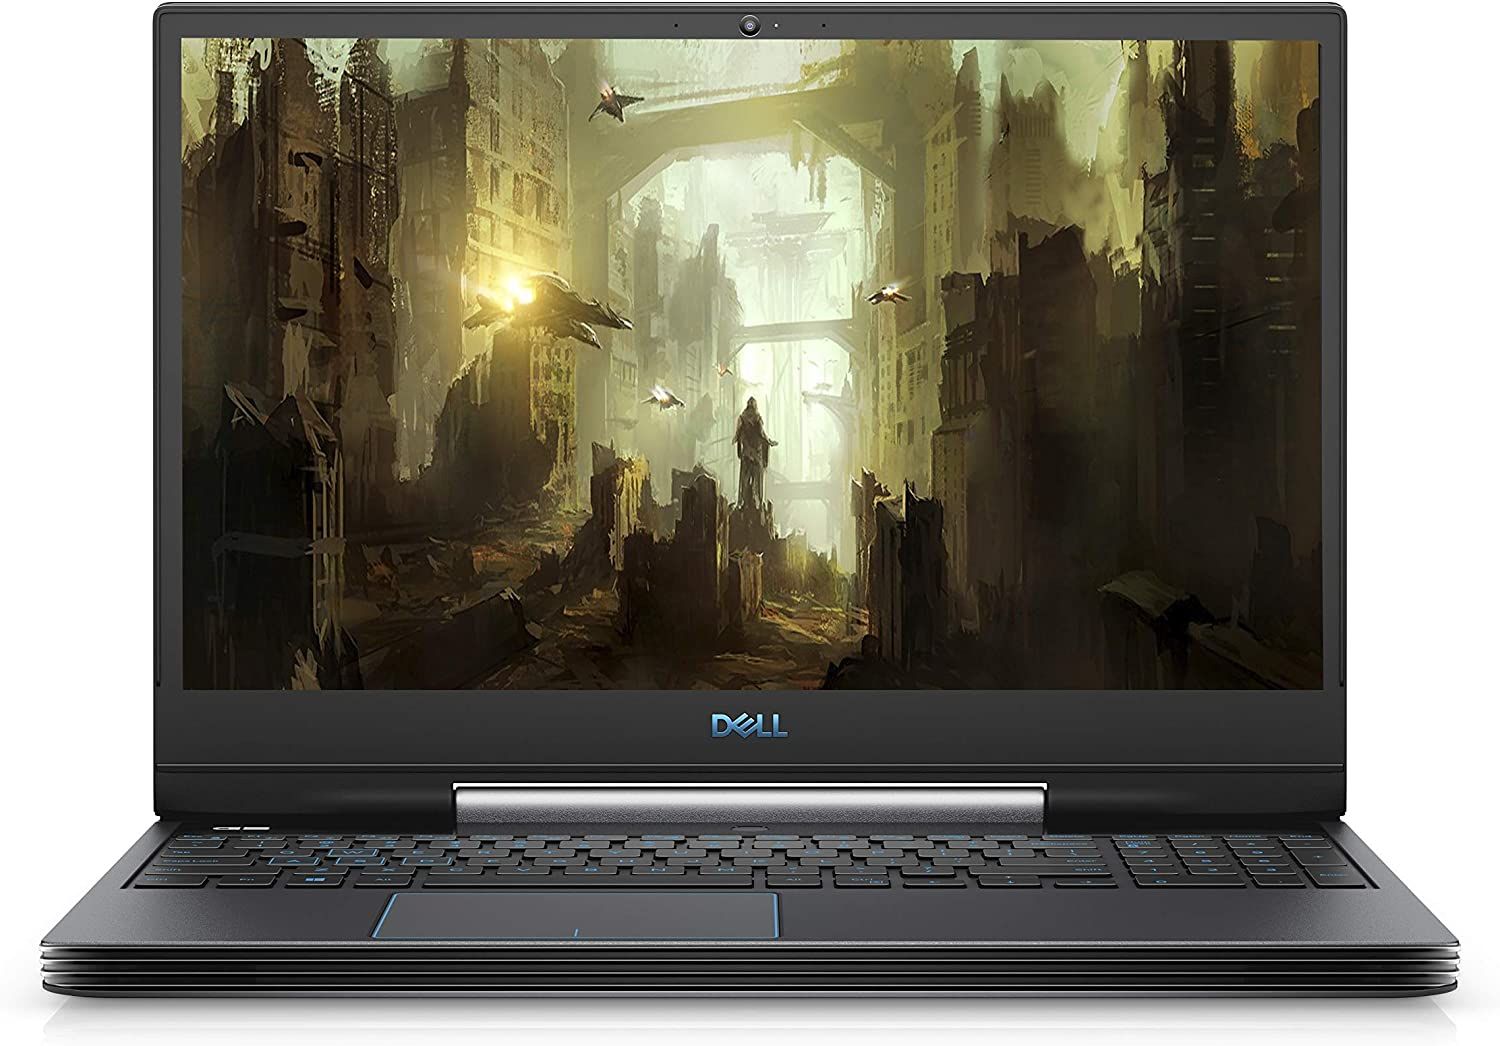 "Dell G5 15 G5590-5547BLK-PUS i5 8300H Proc (Quad-Core, 8MB Cache 15.6"" FHD,NVIDIA(R) GeForce(R) GTX 1050Ti w/4gb Graphics mem,1TB HDD+128GB SSD (Renewed)"